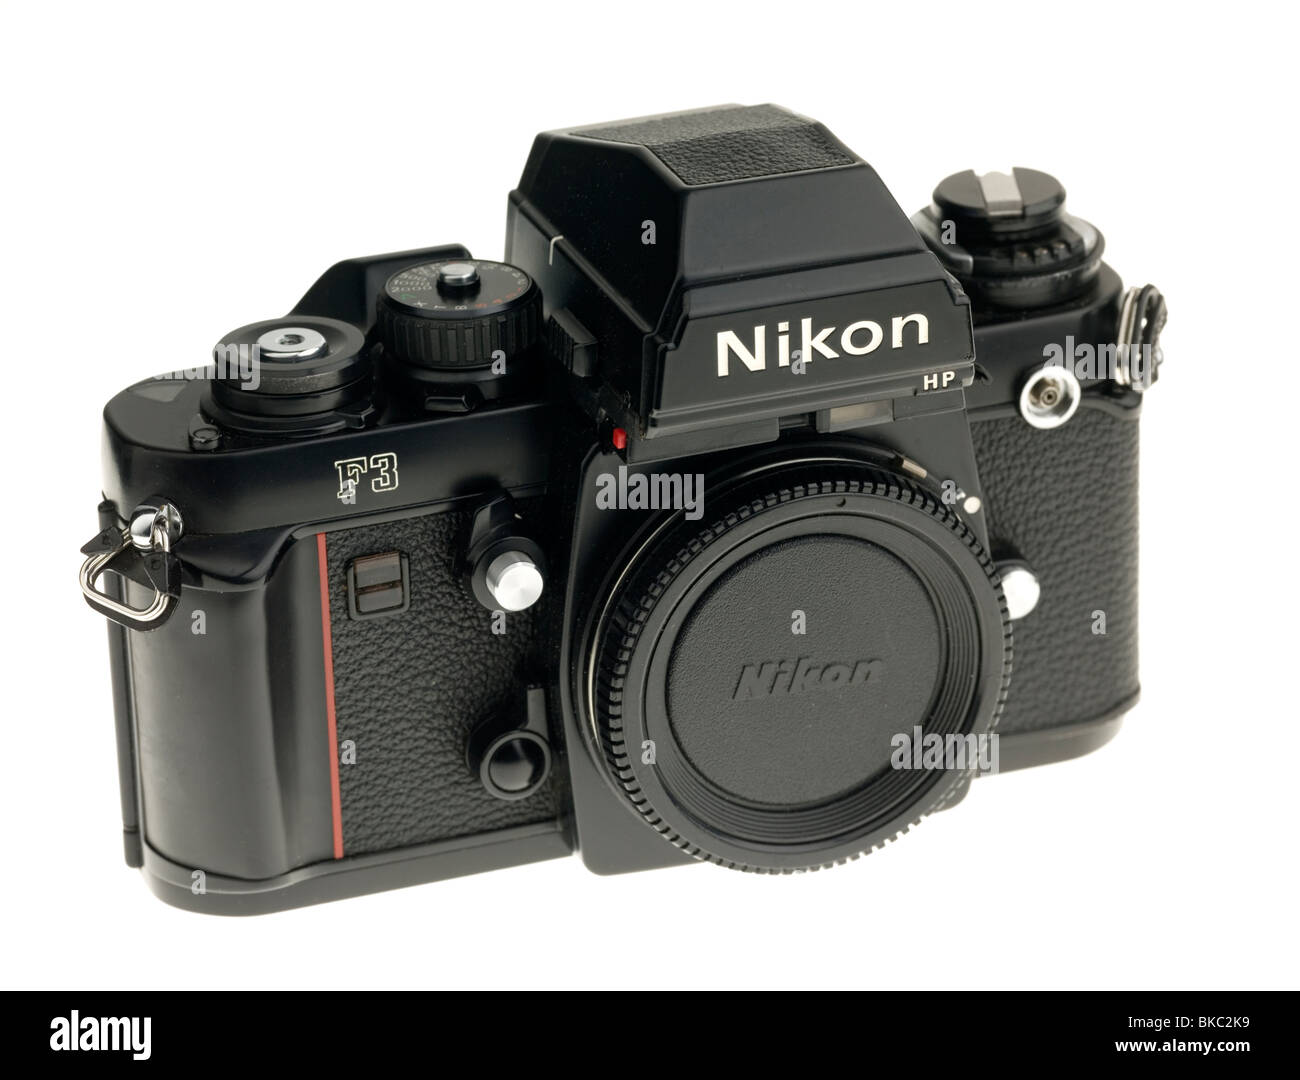 Nikon F3 camera body - Stock Image